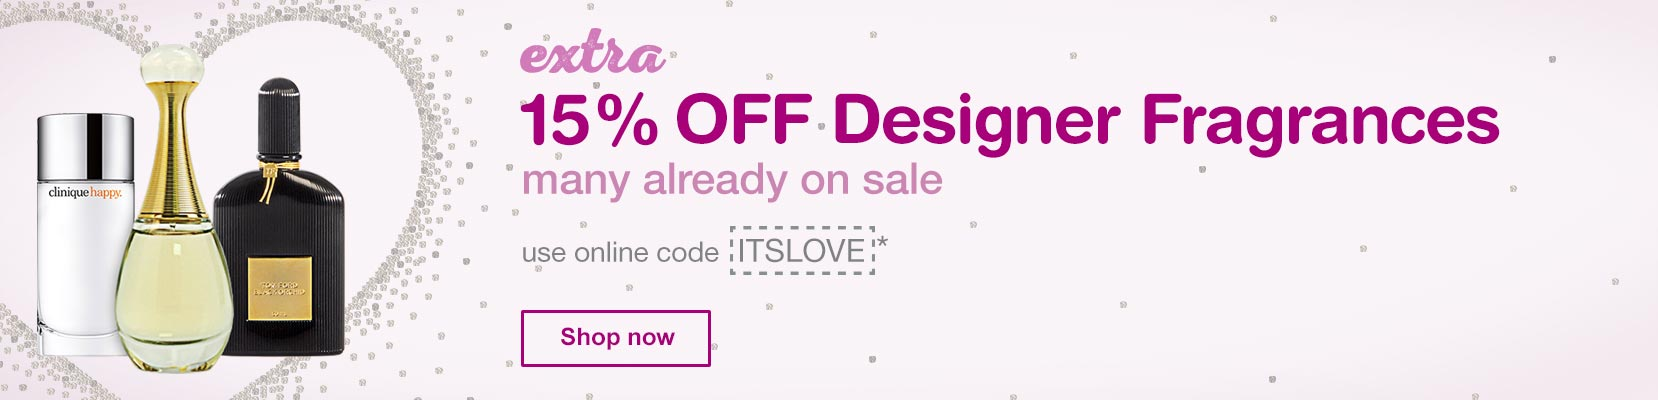 EXTRA 15% OFF Designer Fragrances, many already on sale. Use online code ITSLOVE.* Shop now.